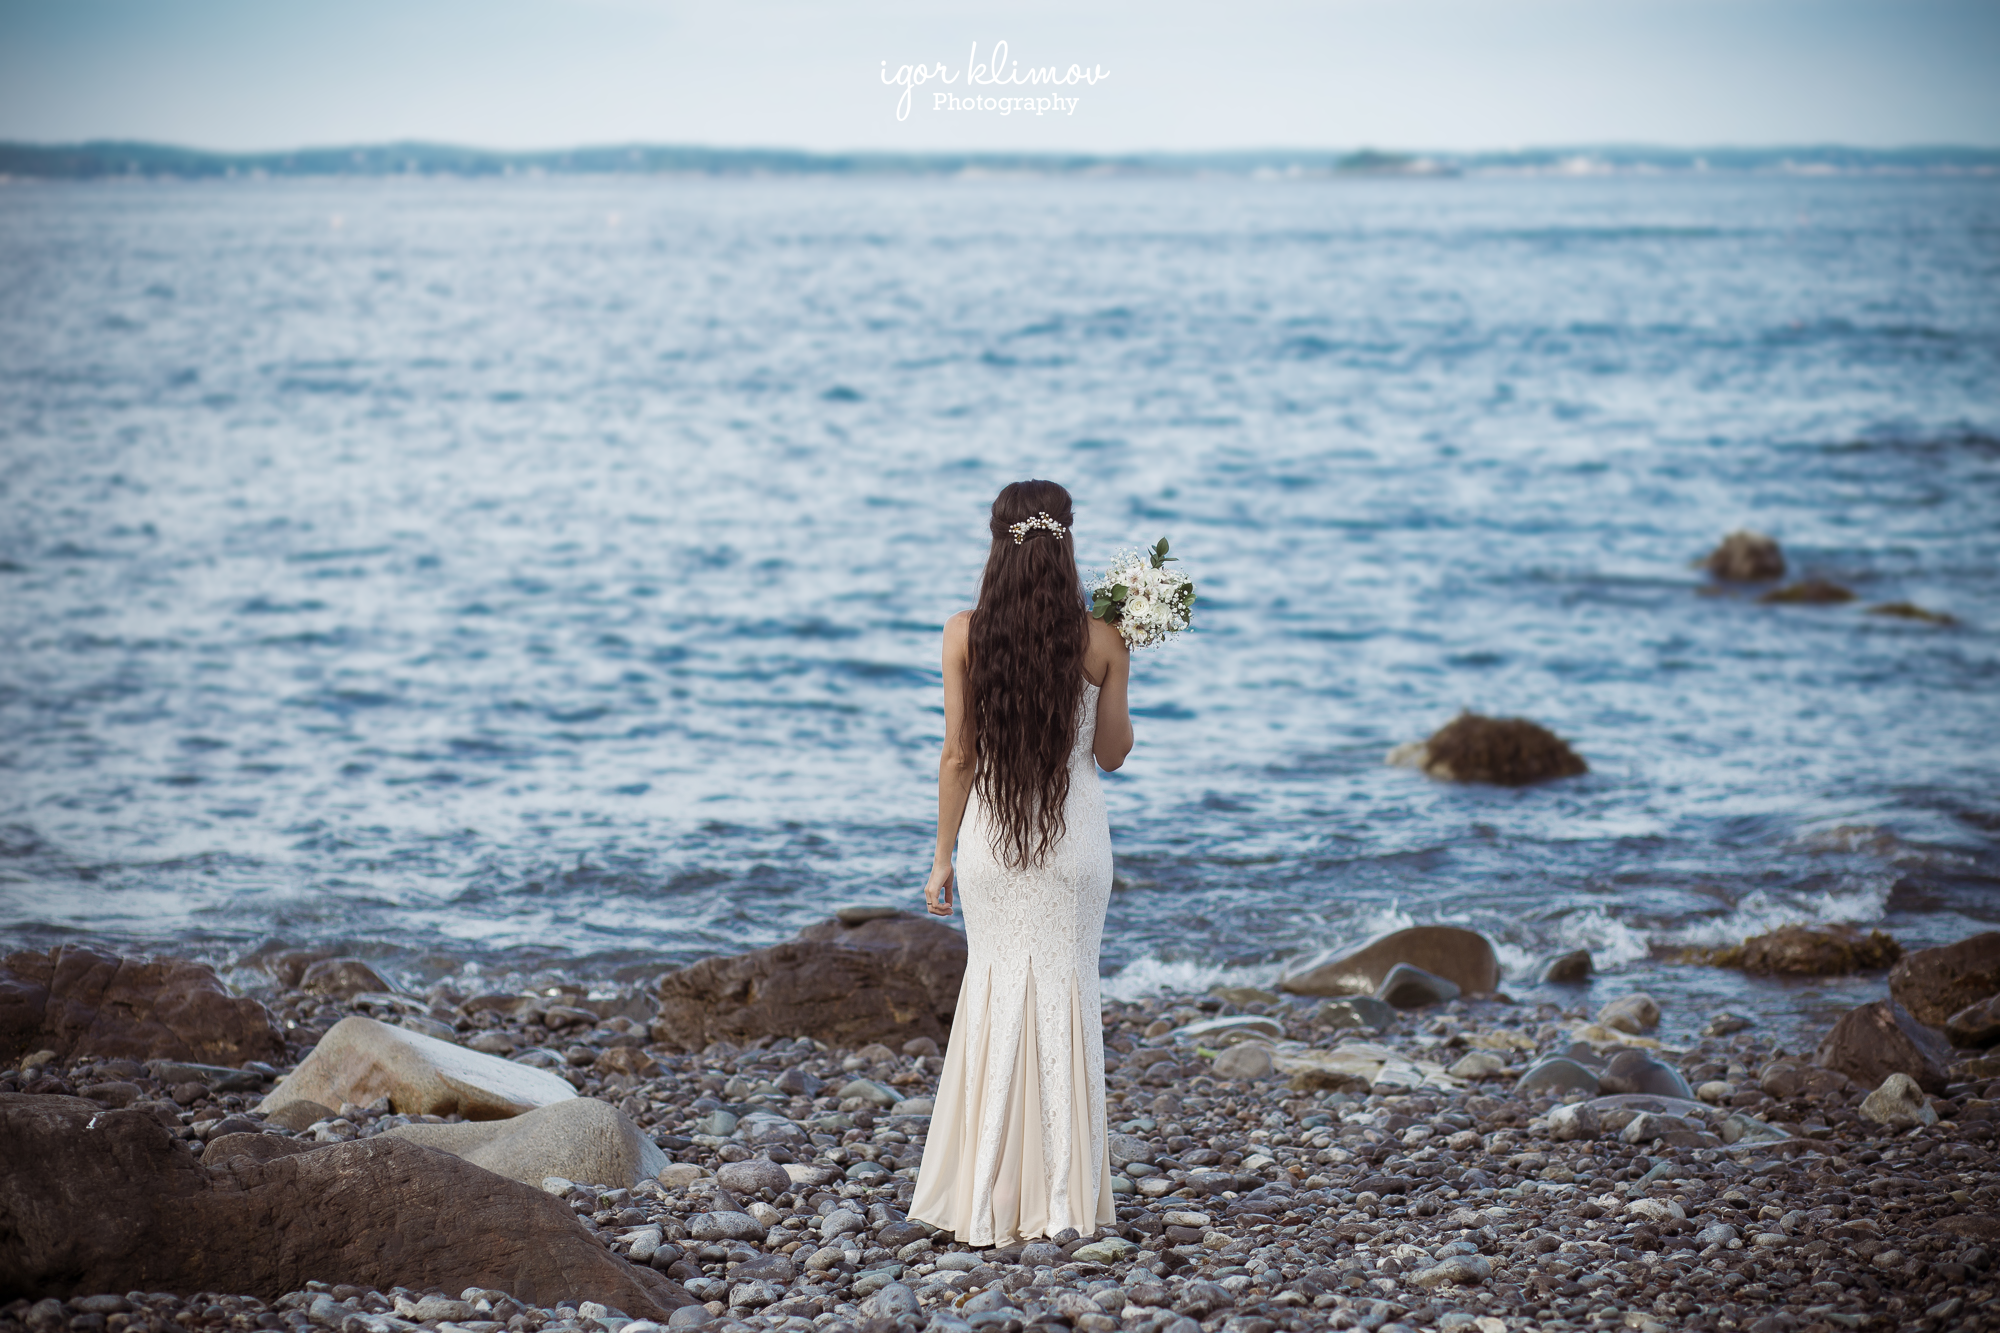 Wedding, Swampscott/Marblehead - Irma: Thank you so much!! We love it! Everything exactly like I was expecting and even better. Beautiful! We've found our photographer!